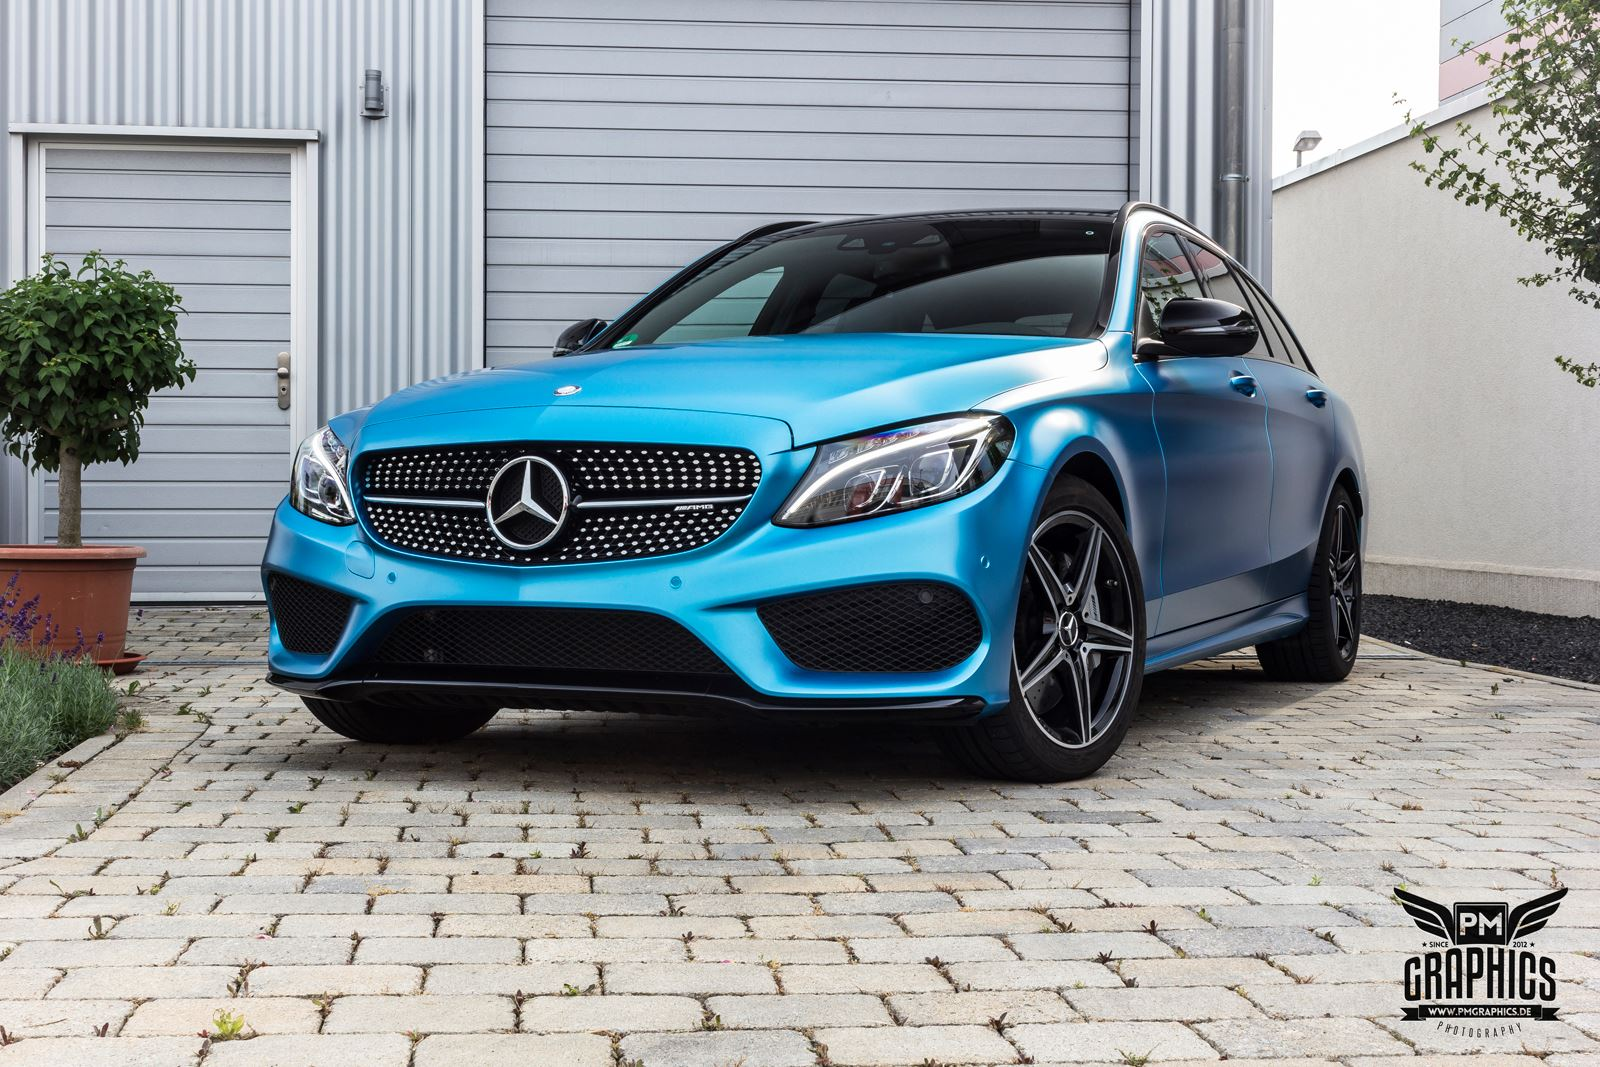 mercedes c450 amg yellow taxi vs c43 in silky blue wrap battle autoevolution. Black Bedroom Furniture Sets. Home Design Ideas